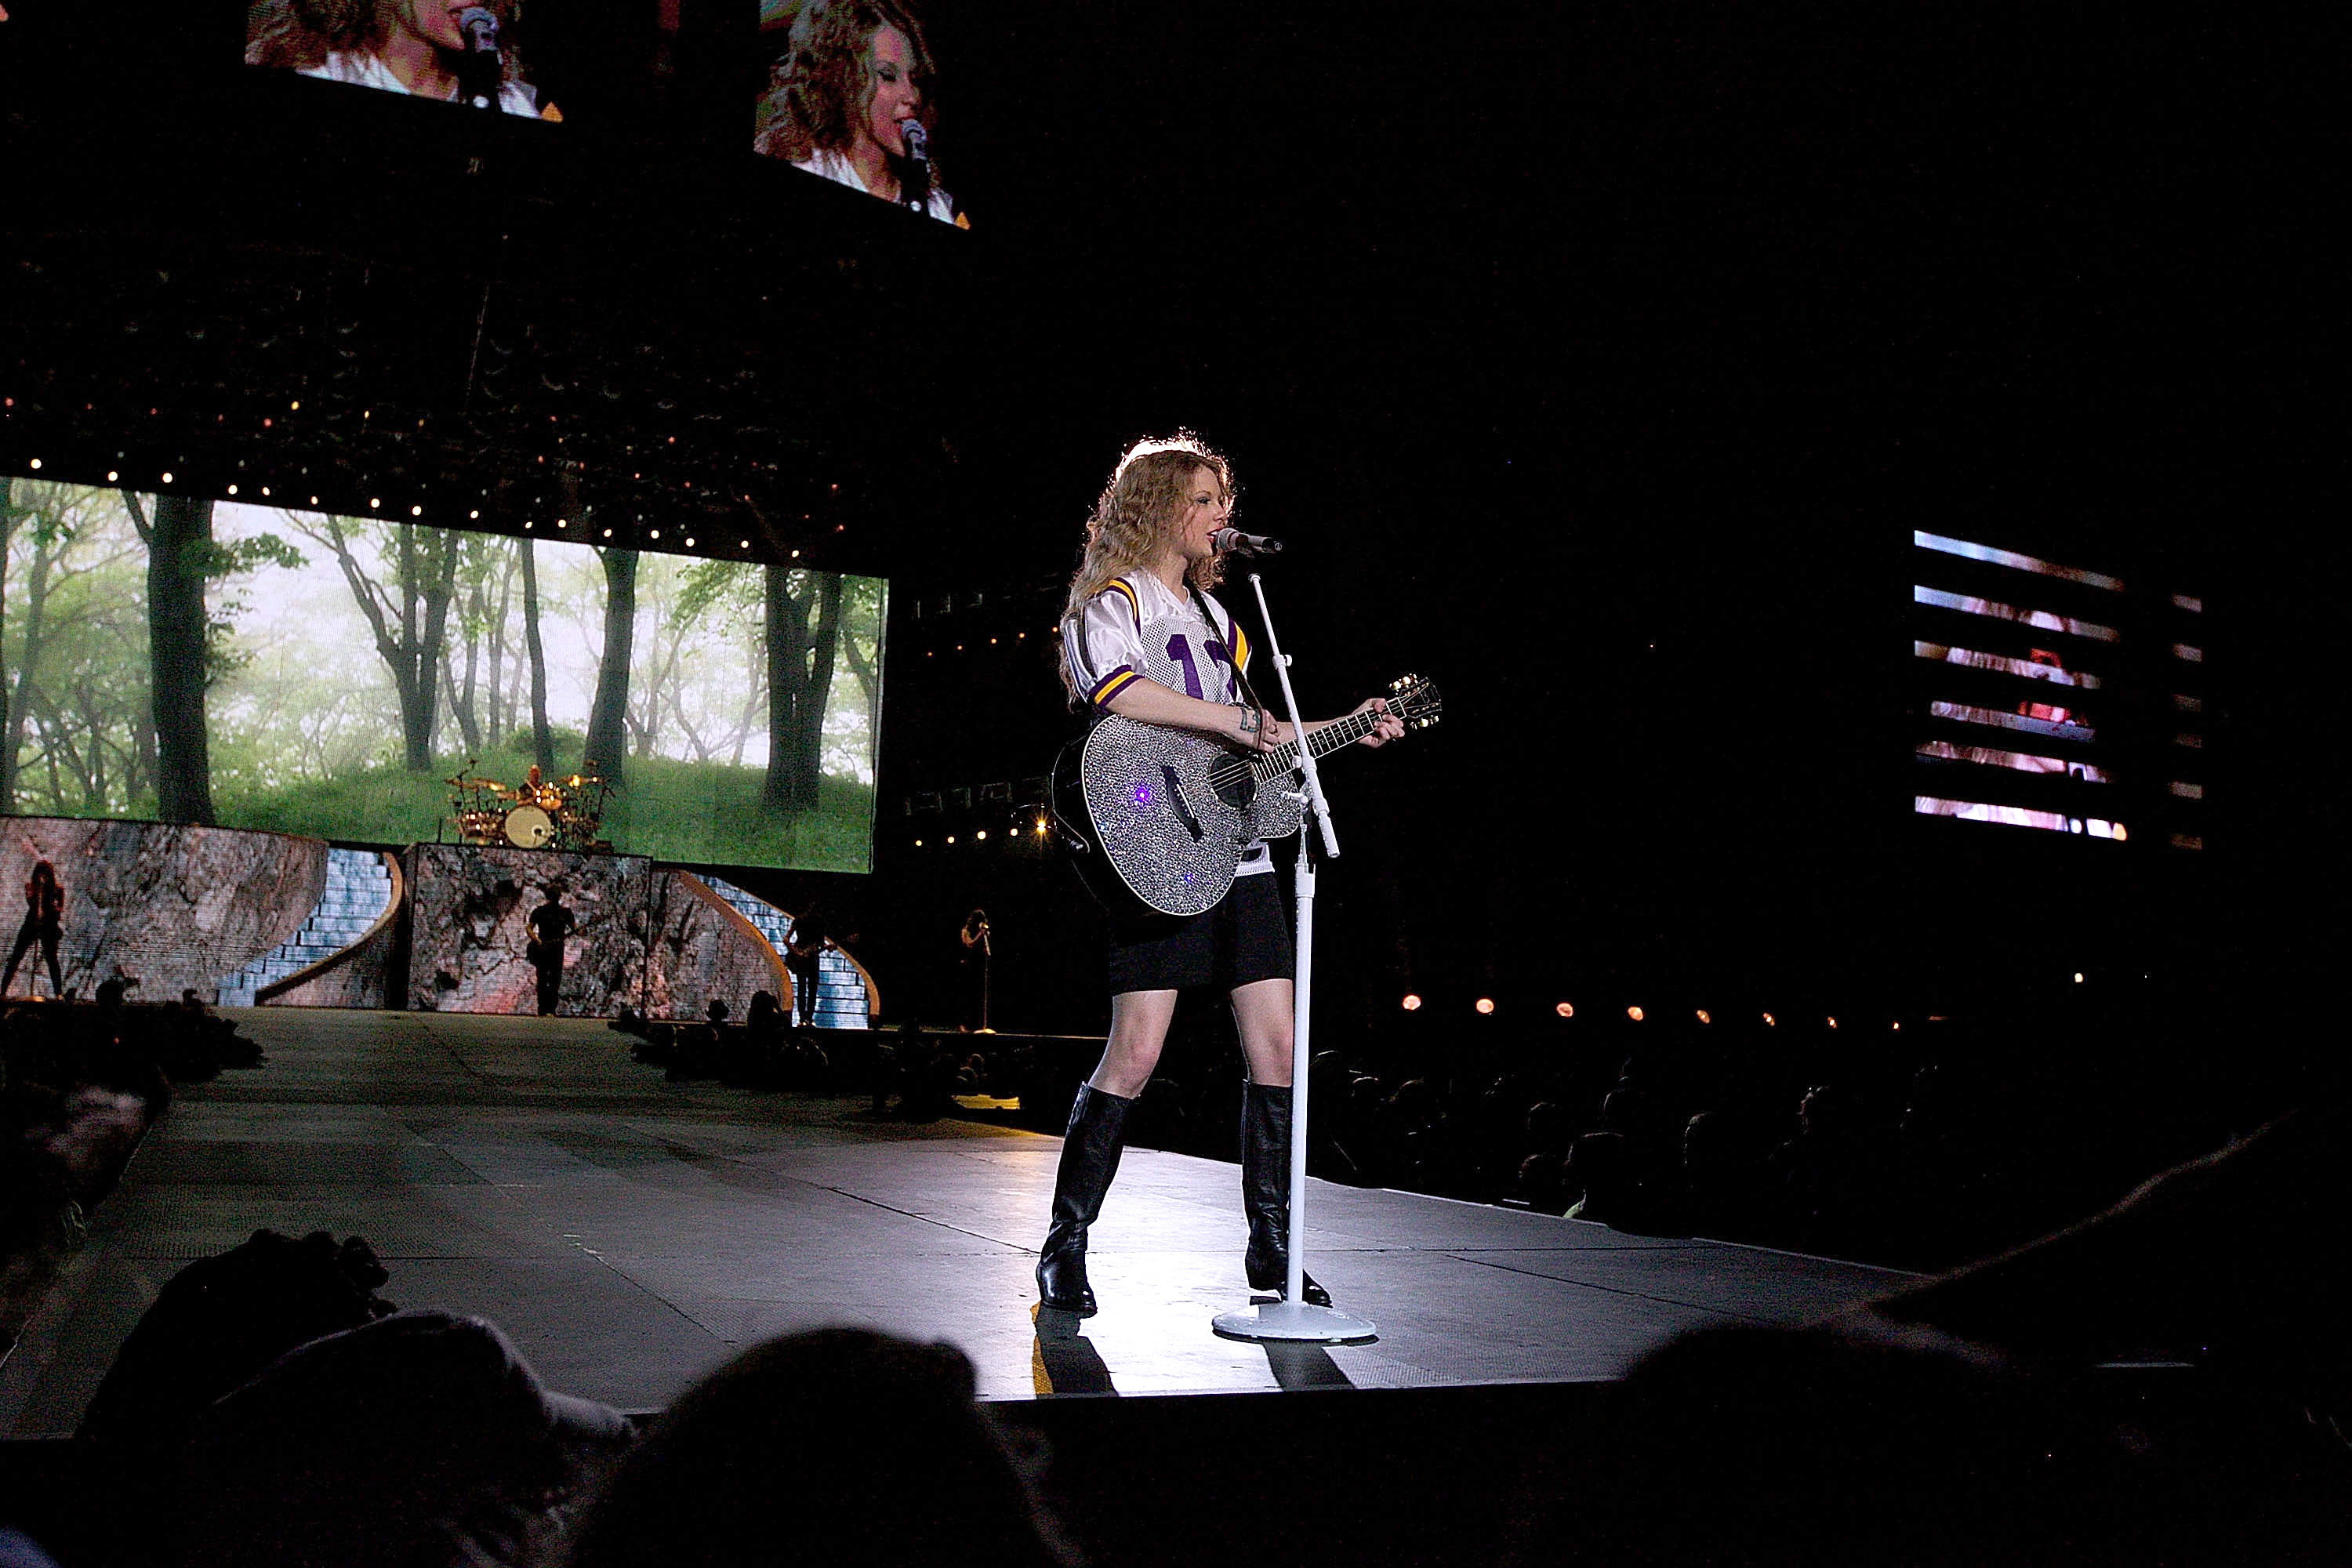 32749_Taylor_swift_performs_her_Fearless_Tour_at_Tiger_Stadium_053_122_989lo.jpg